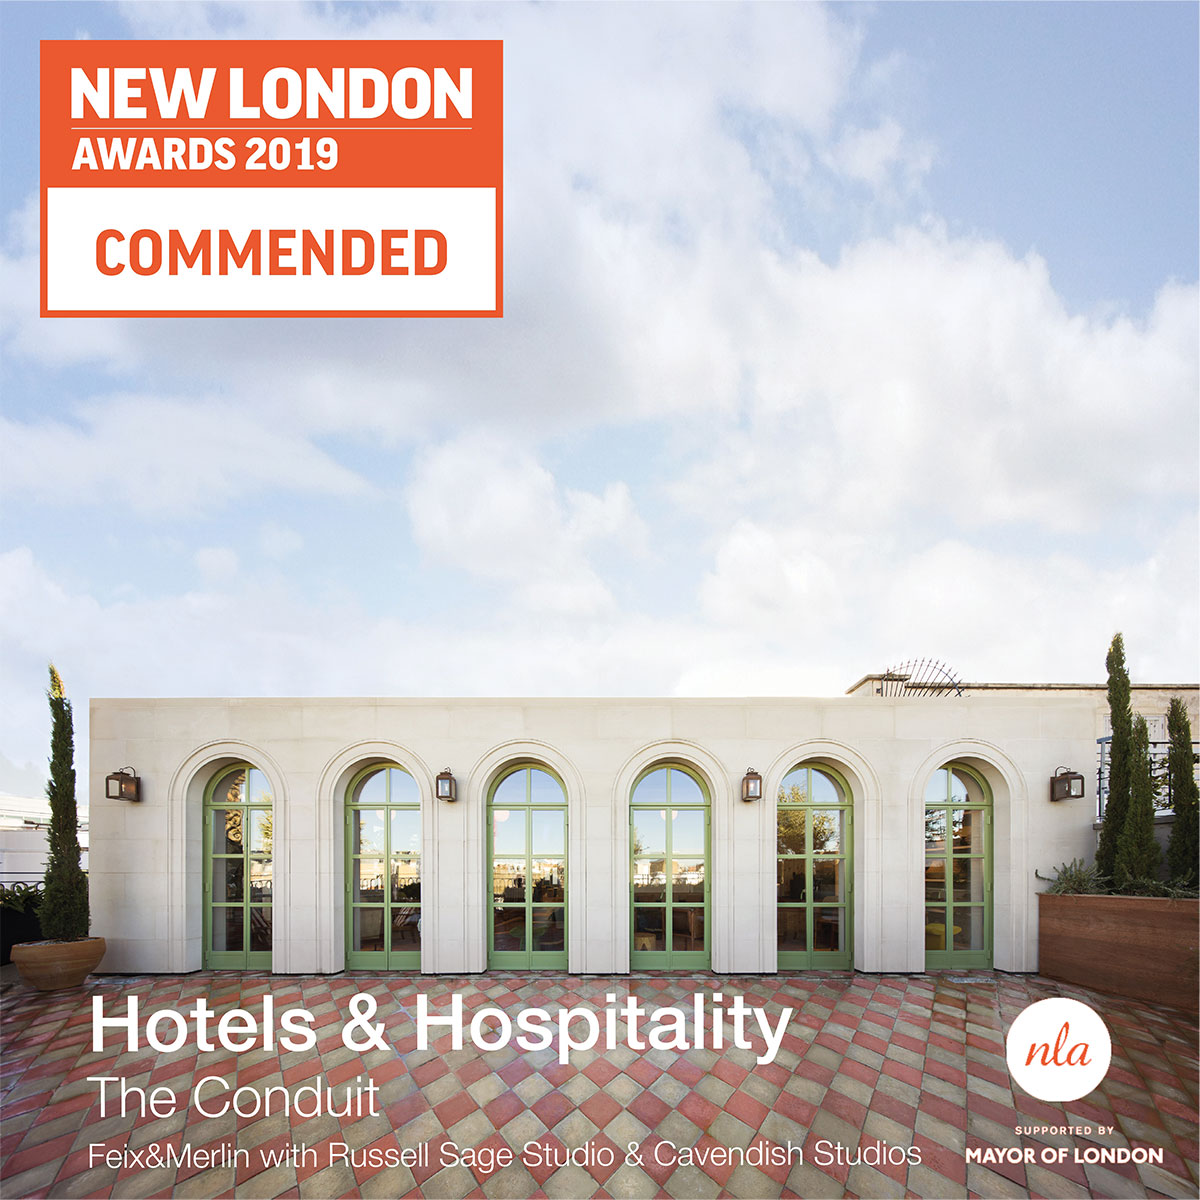 COMMENDED New London Awards 2019